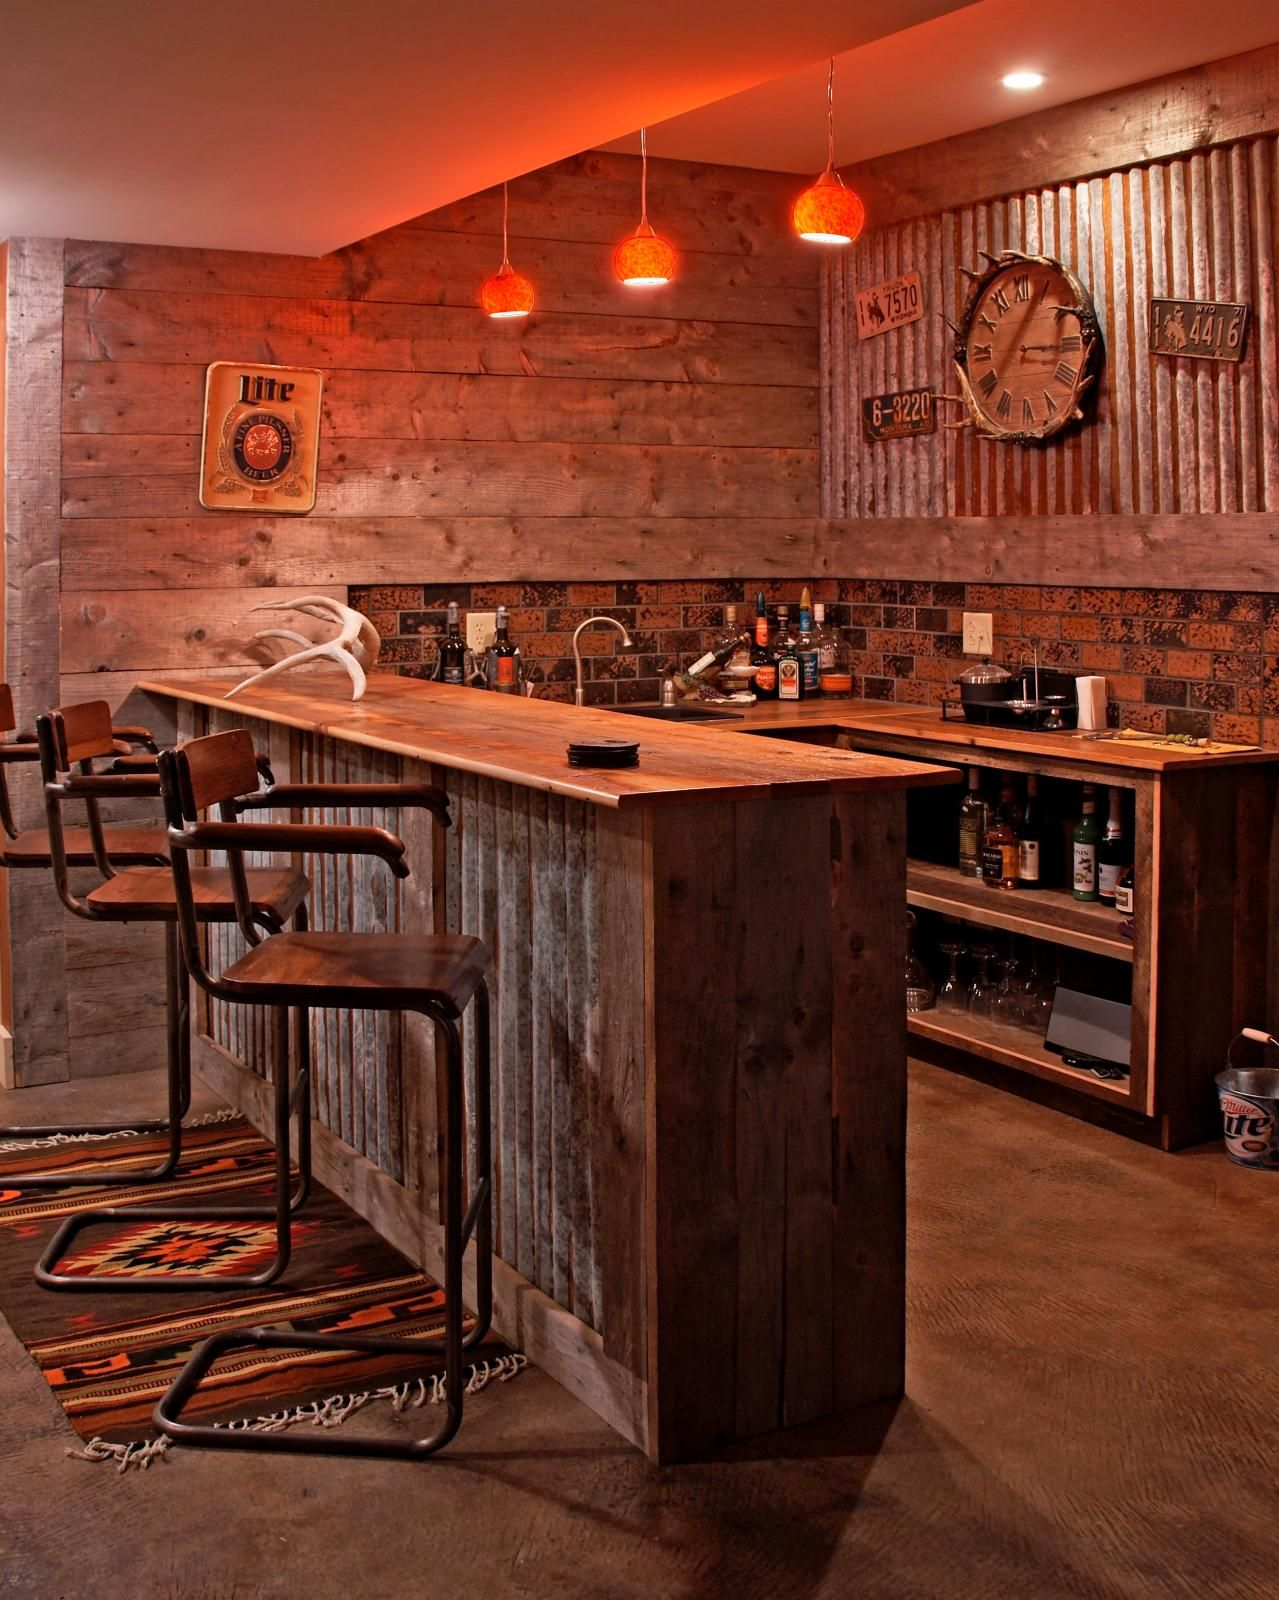 The Wet Bar In Family Room Was Built By Owner With Reclaimed Wood And